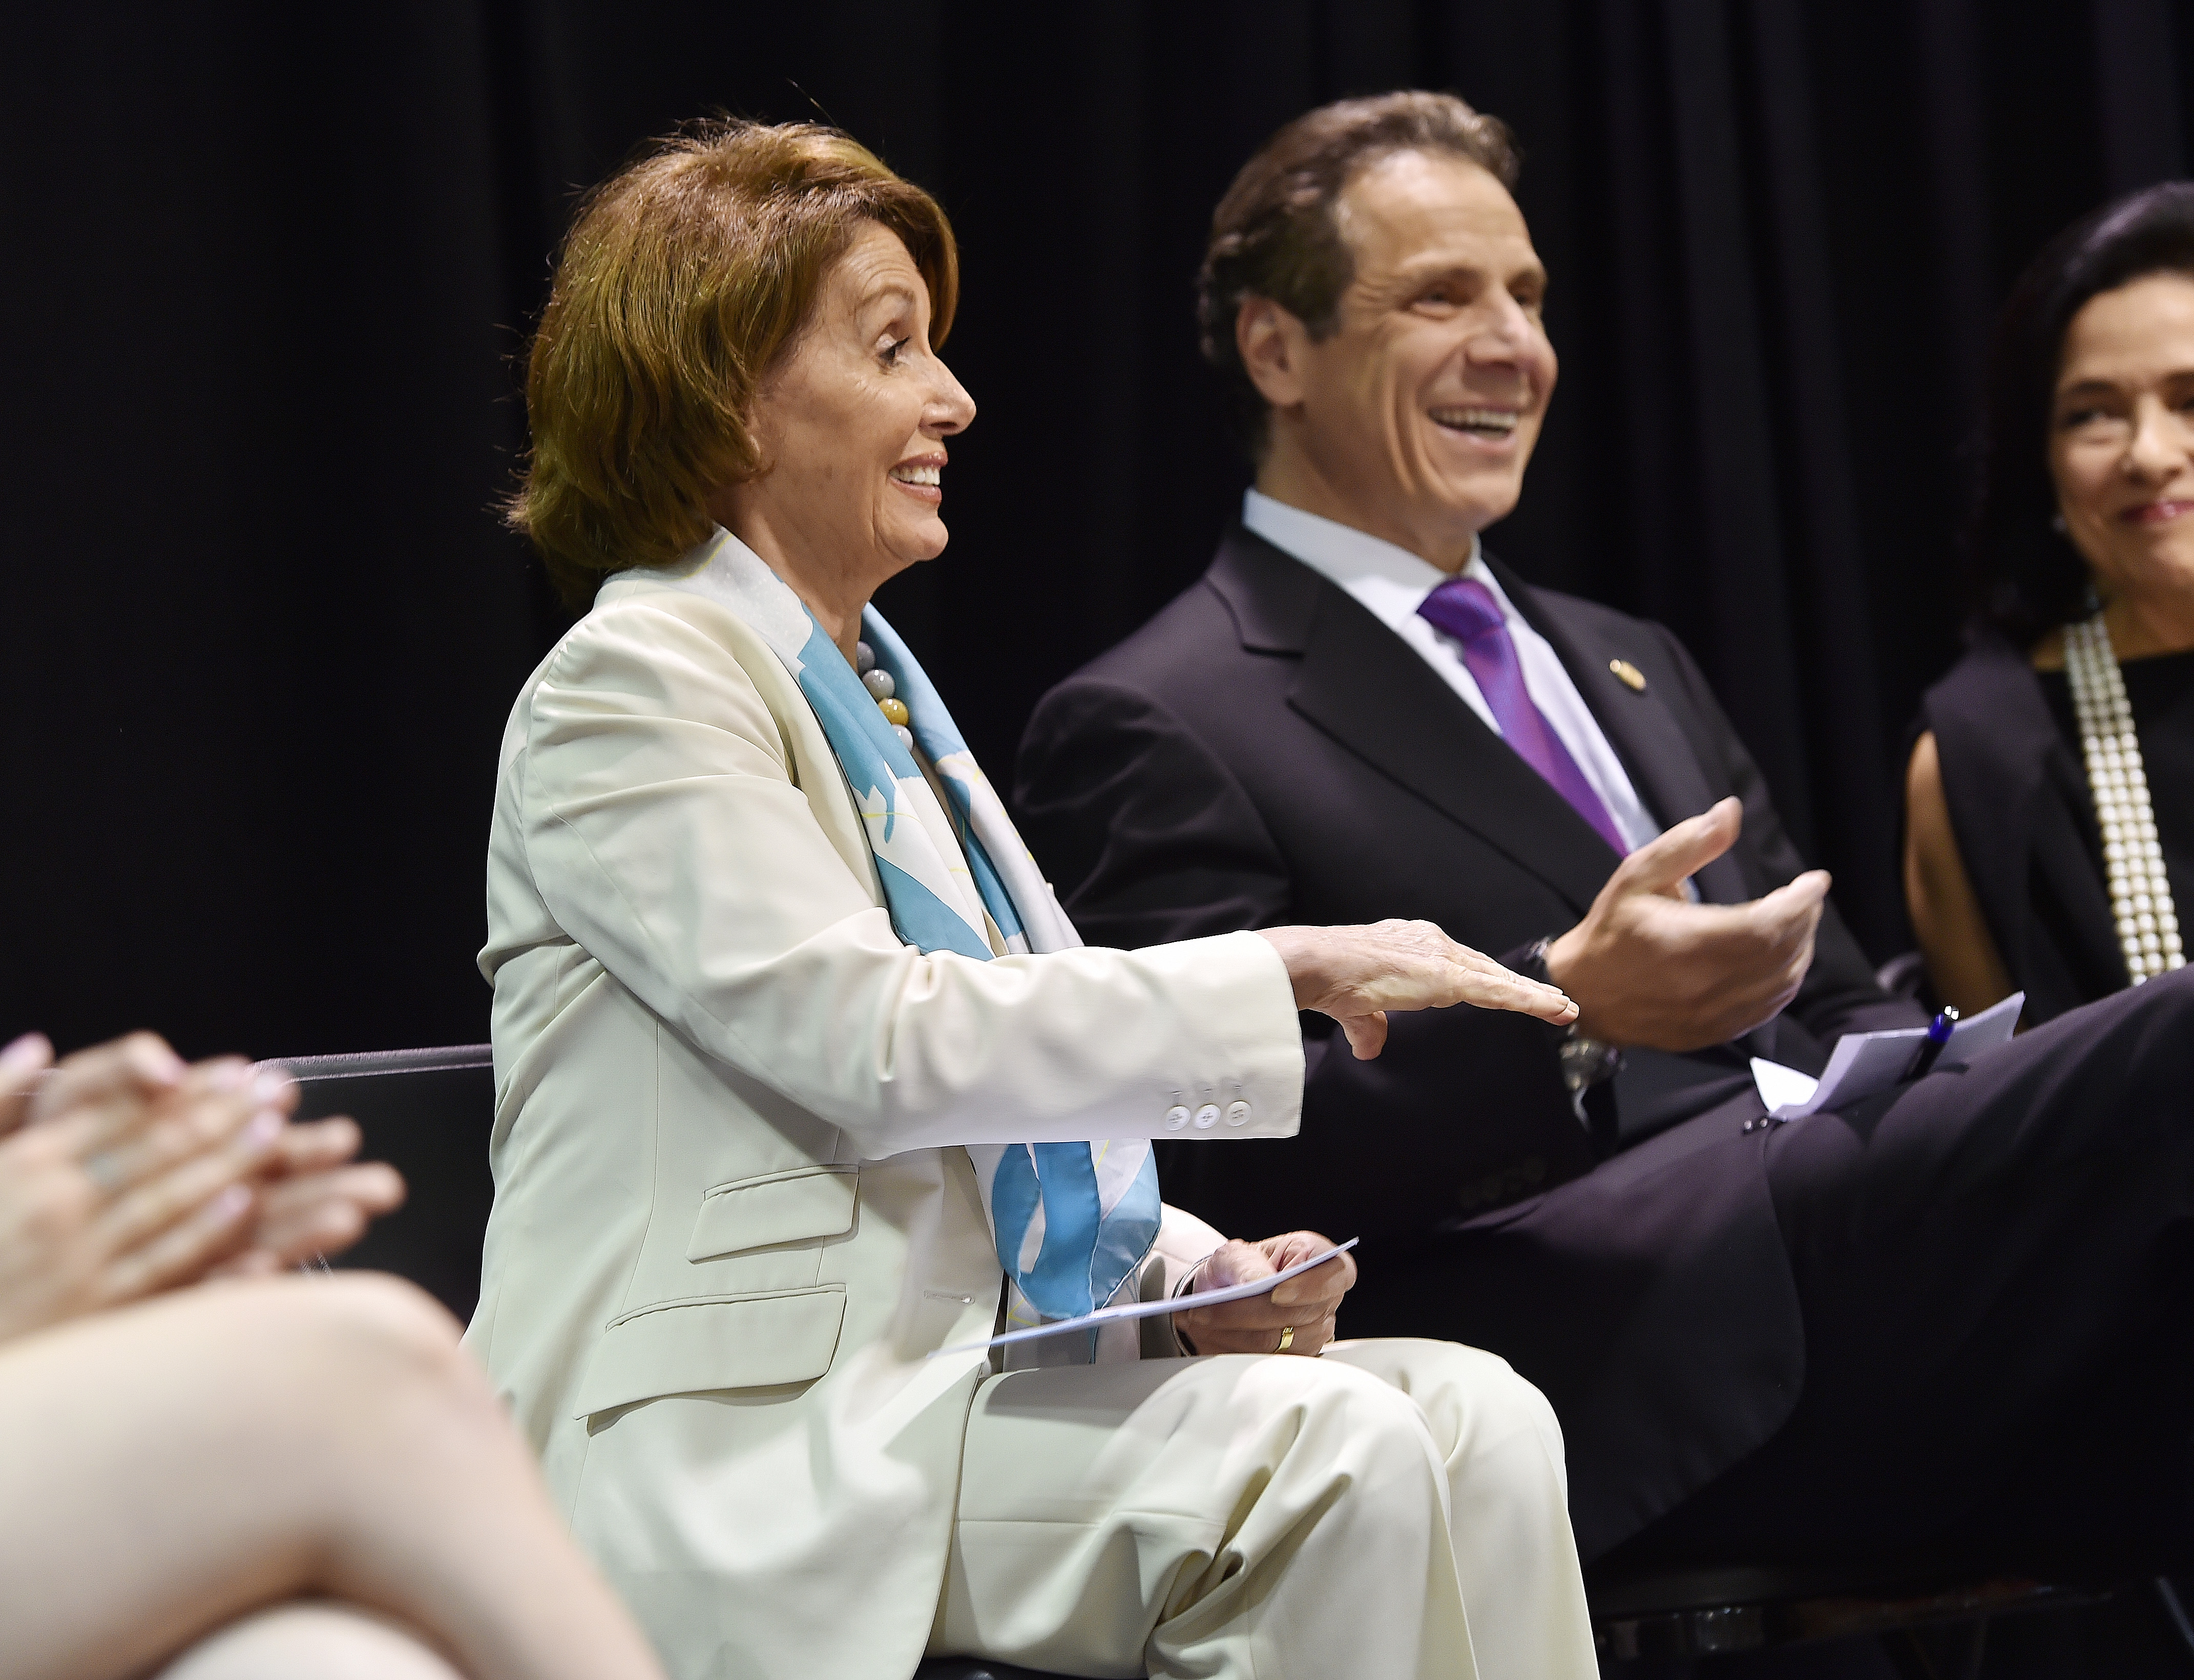 """Governor Andrew M. Cuomo and  Lieutenant Governor Kathy Hochul announce the """"Enough is Enough"""" Campaign against sexual assault on campus at the Fashion Institute of Technology in New York City. (Kevin P. Coughlin/Office of the Governor)"""